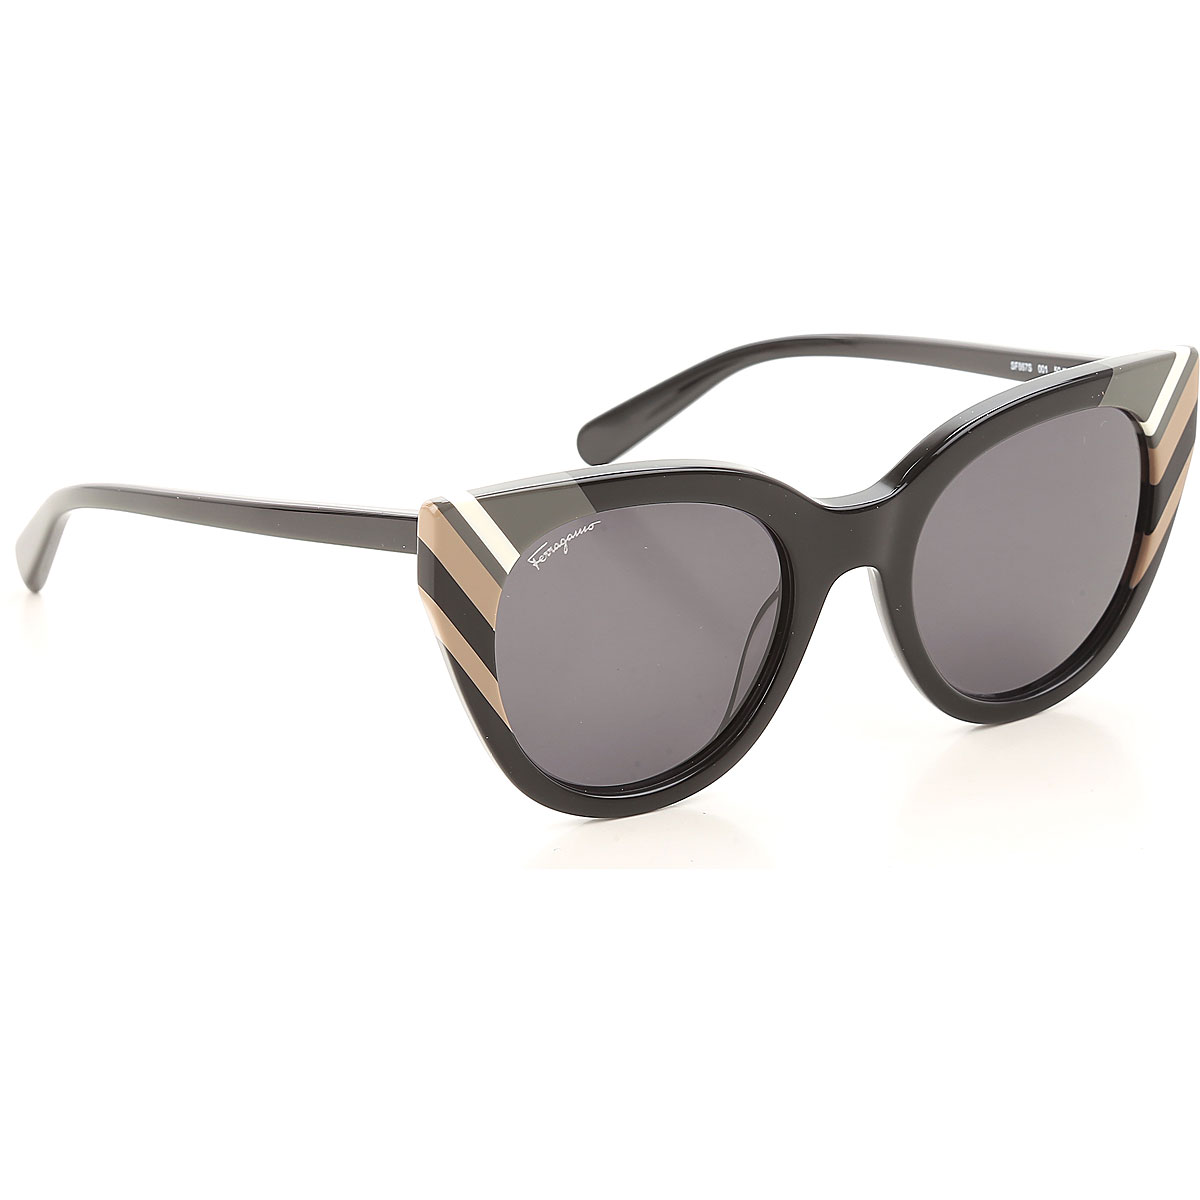 Salvatore Ferragamo Sunglasses On Sale, Black, 2021 from Salvatore Ferragamo